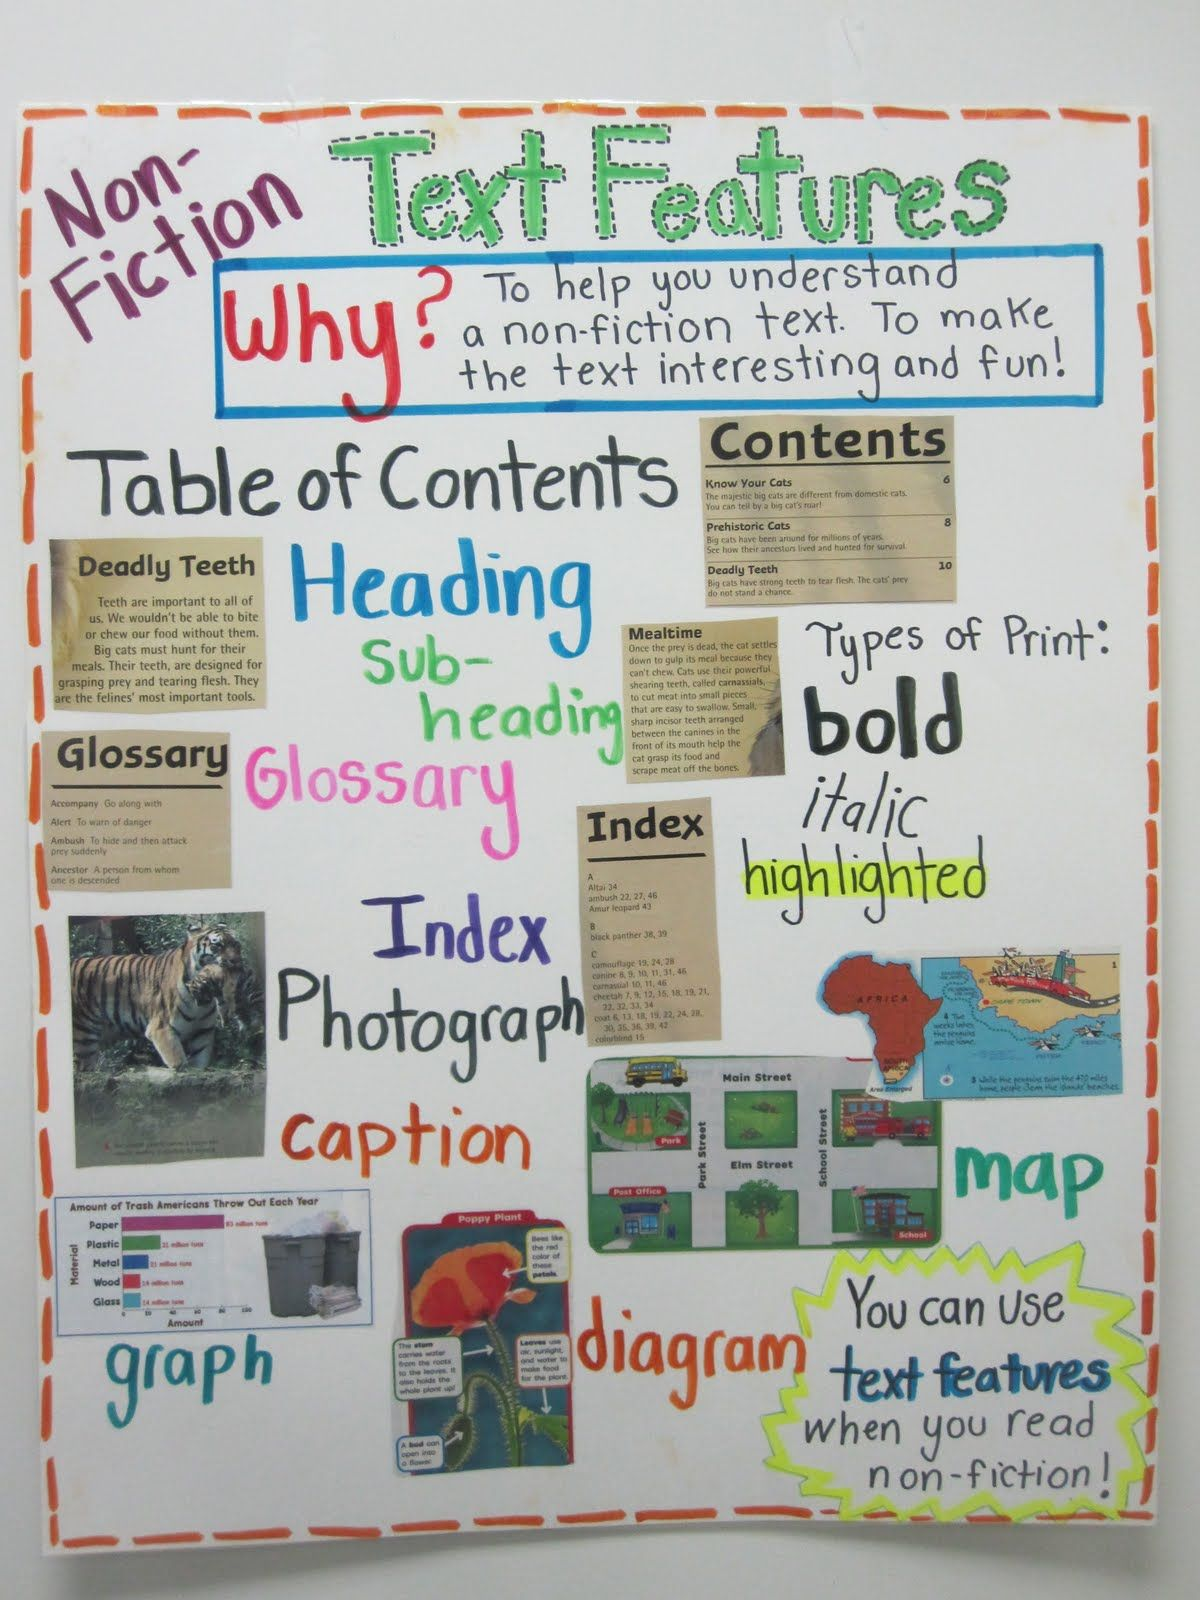 Great Visual For Students When Learning About Non Fiction